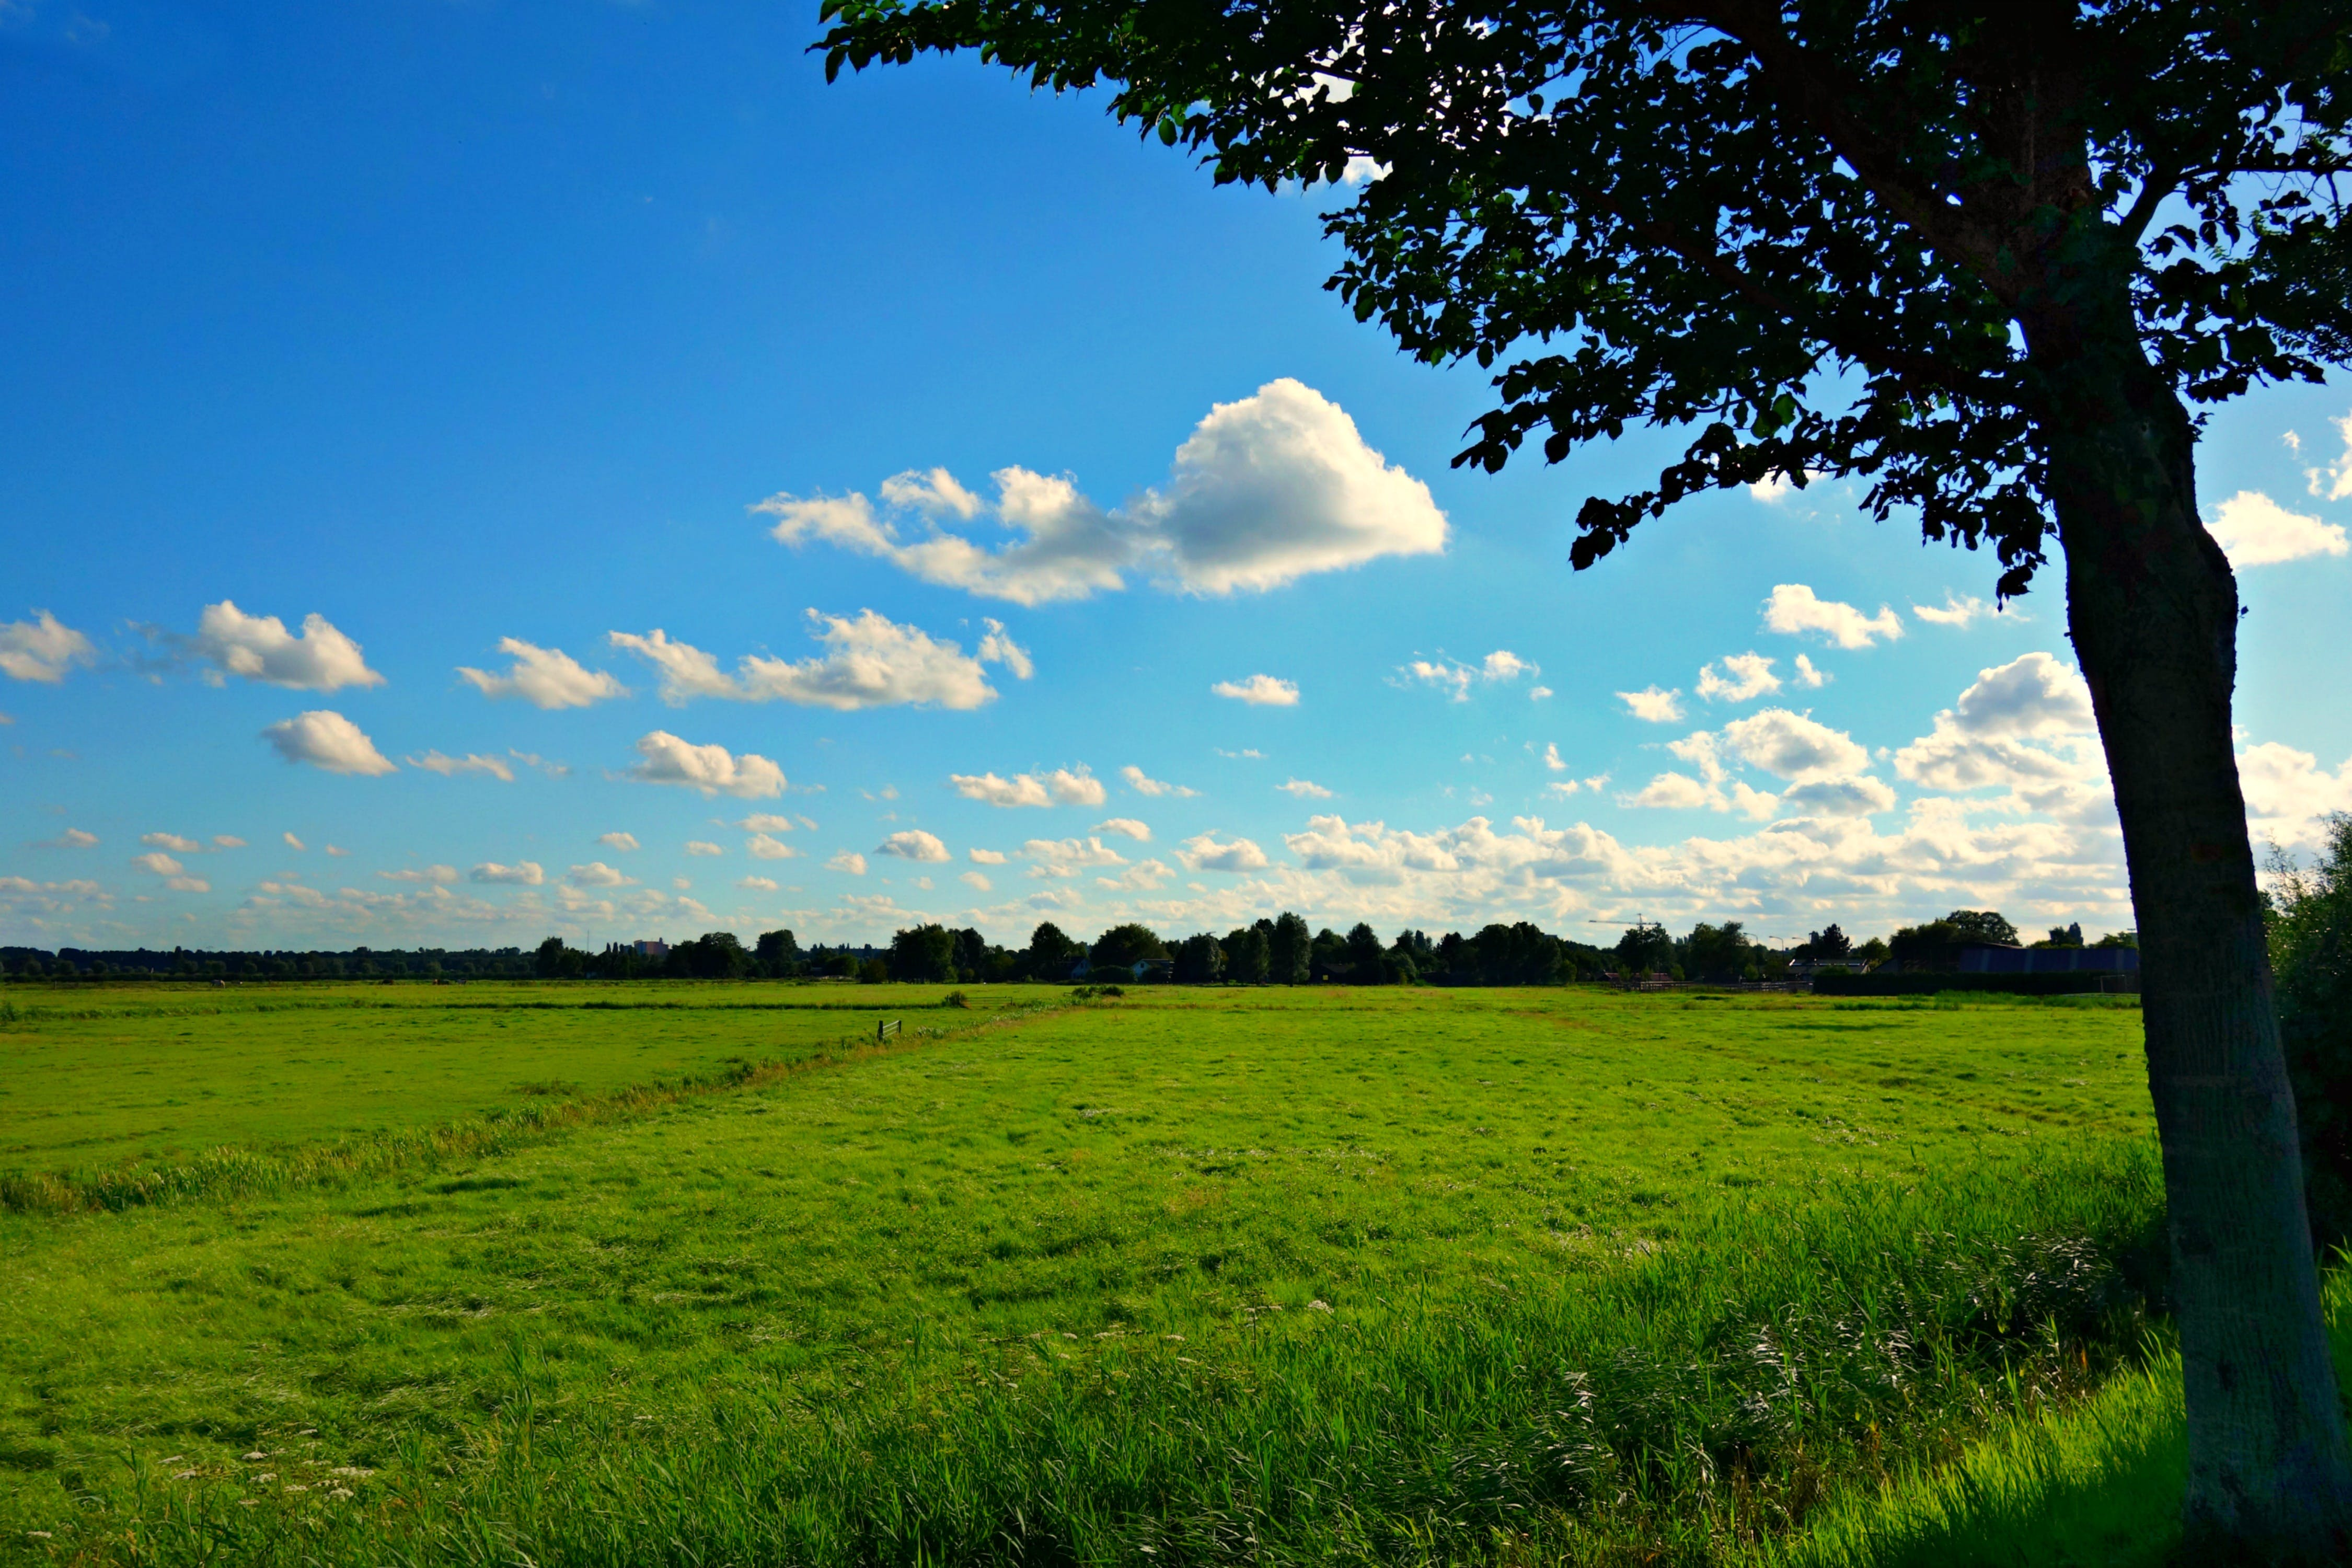 Free stock photo of landscape, sky, sunny, clouds